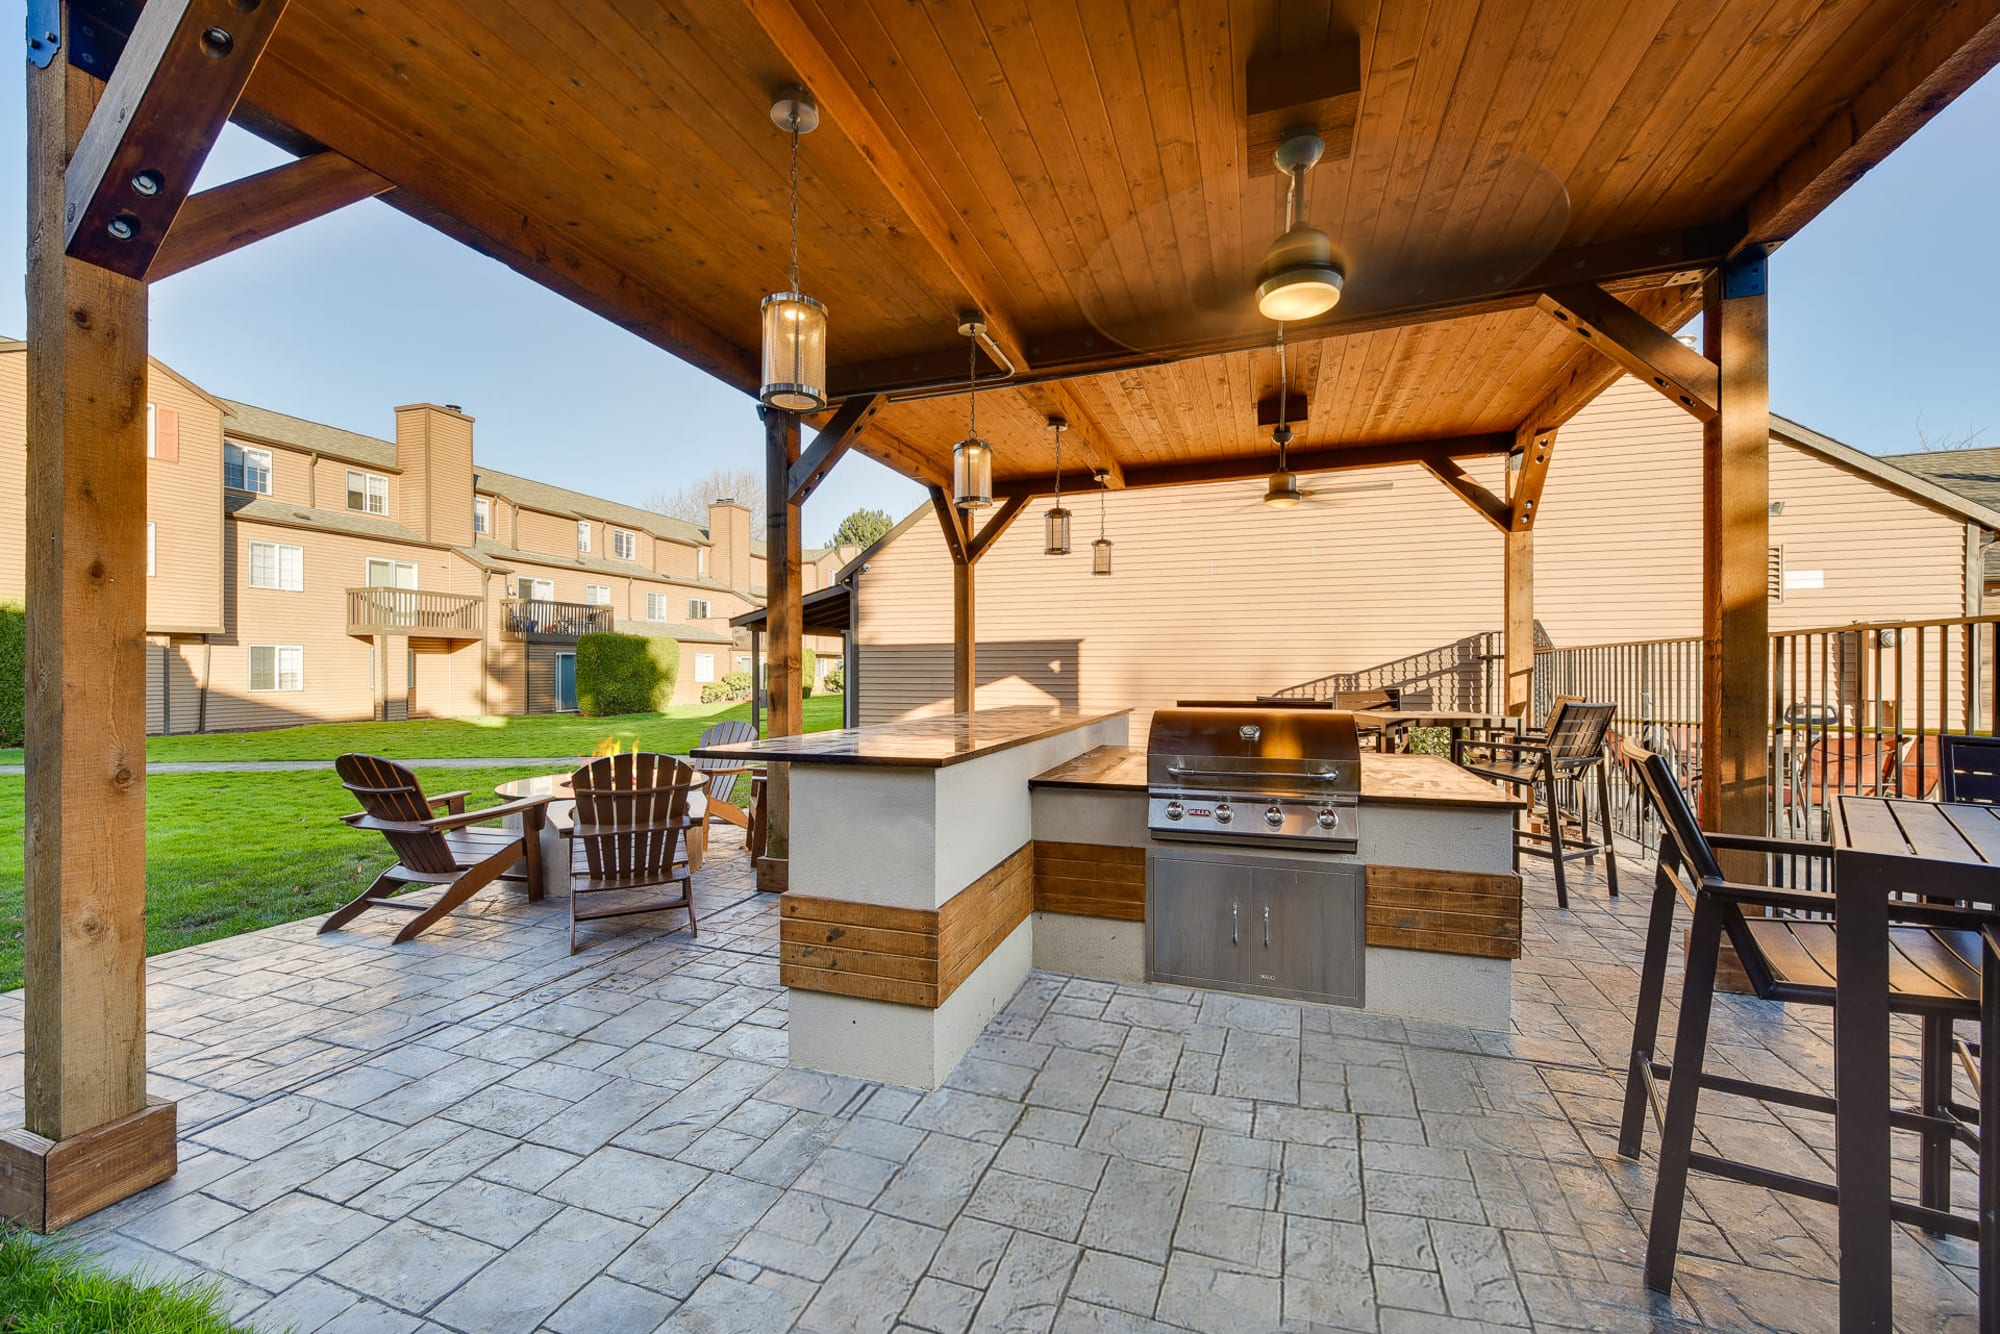 Covered BBQ and fire pit area at Renaissance at 29th Apartments in Vancouver, Washington